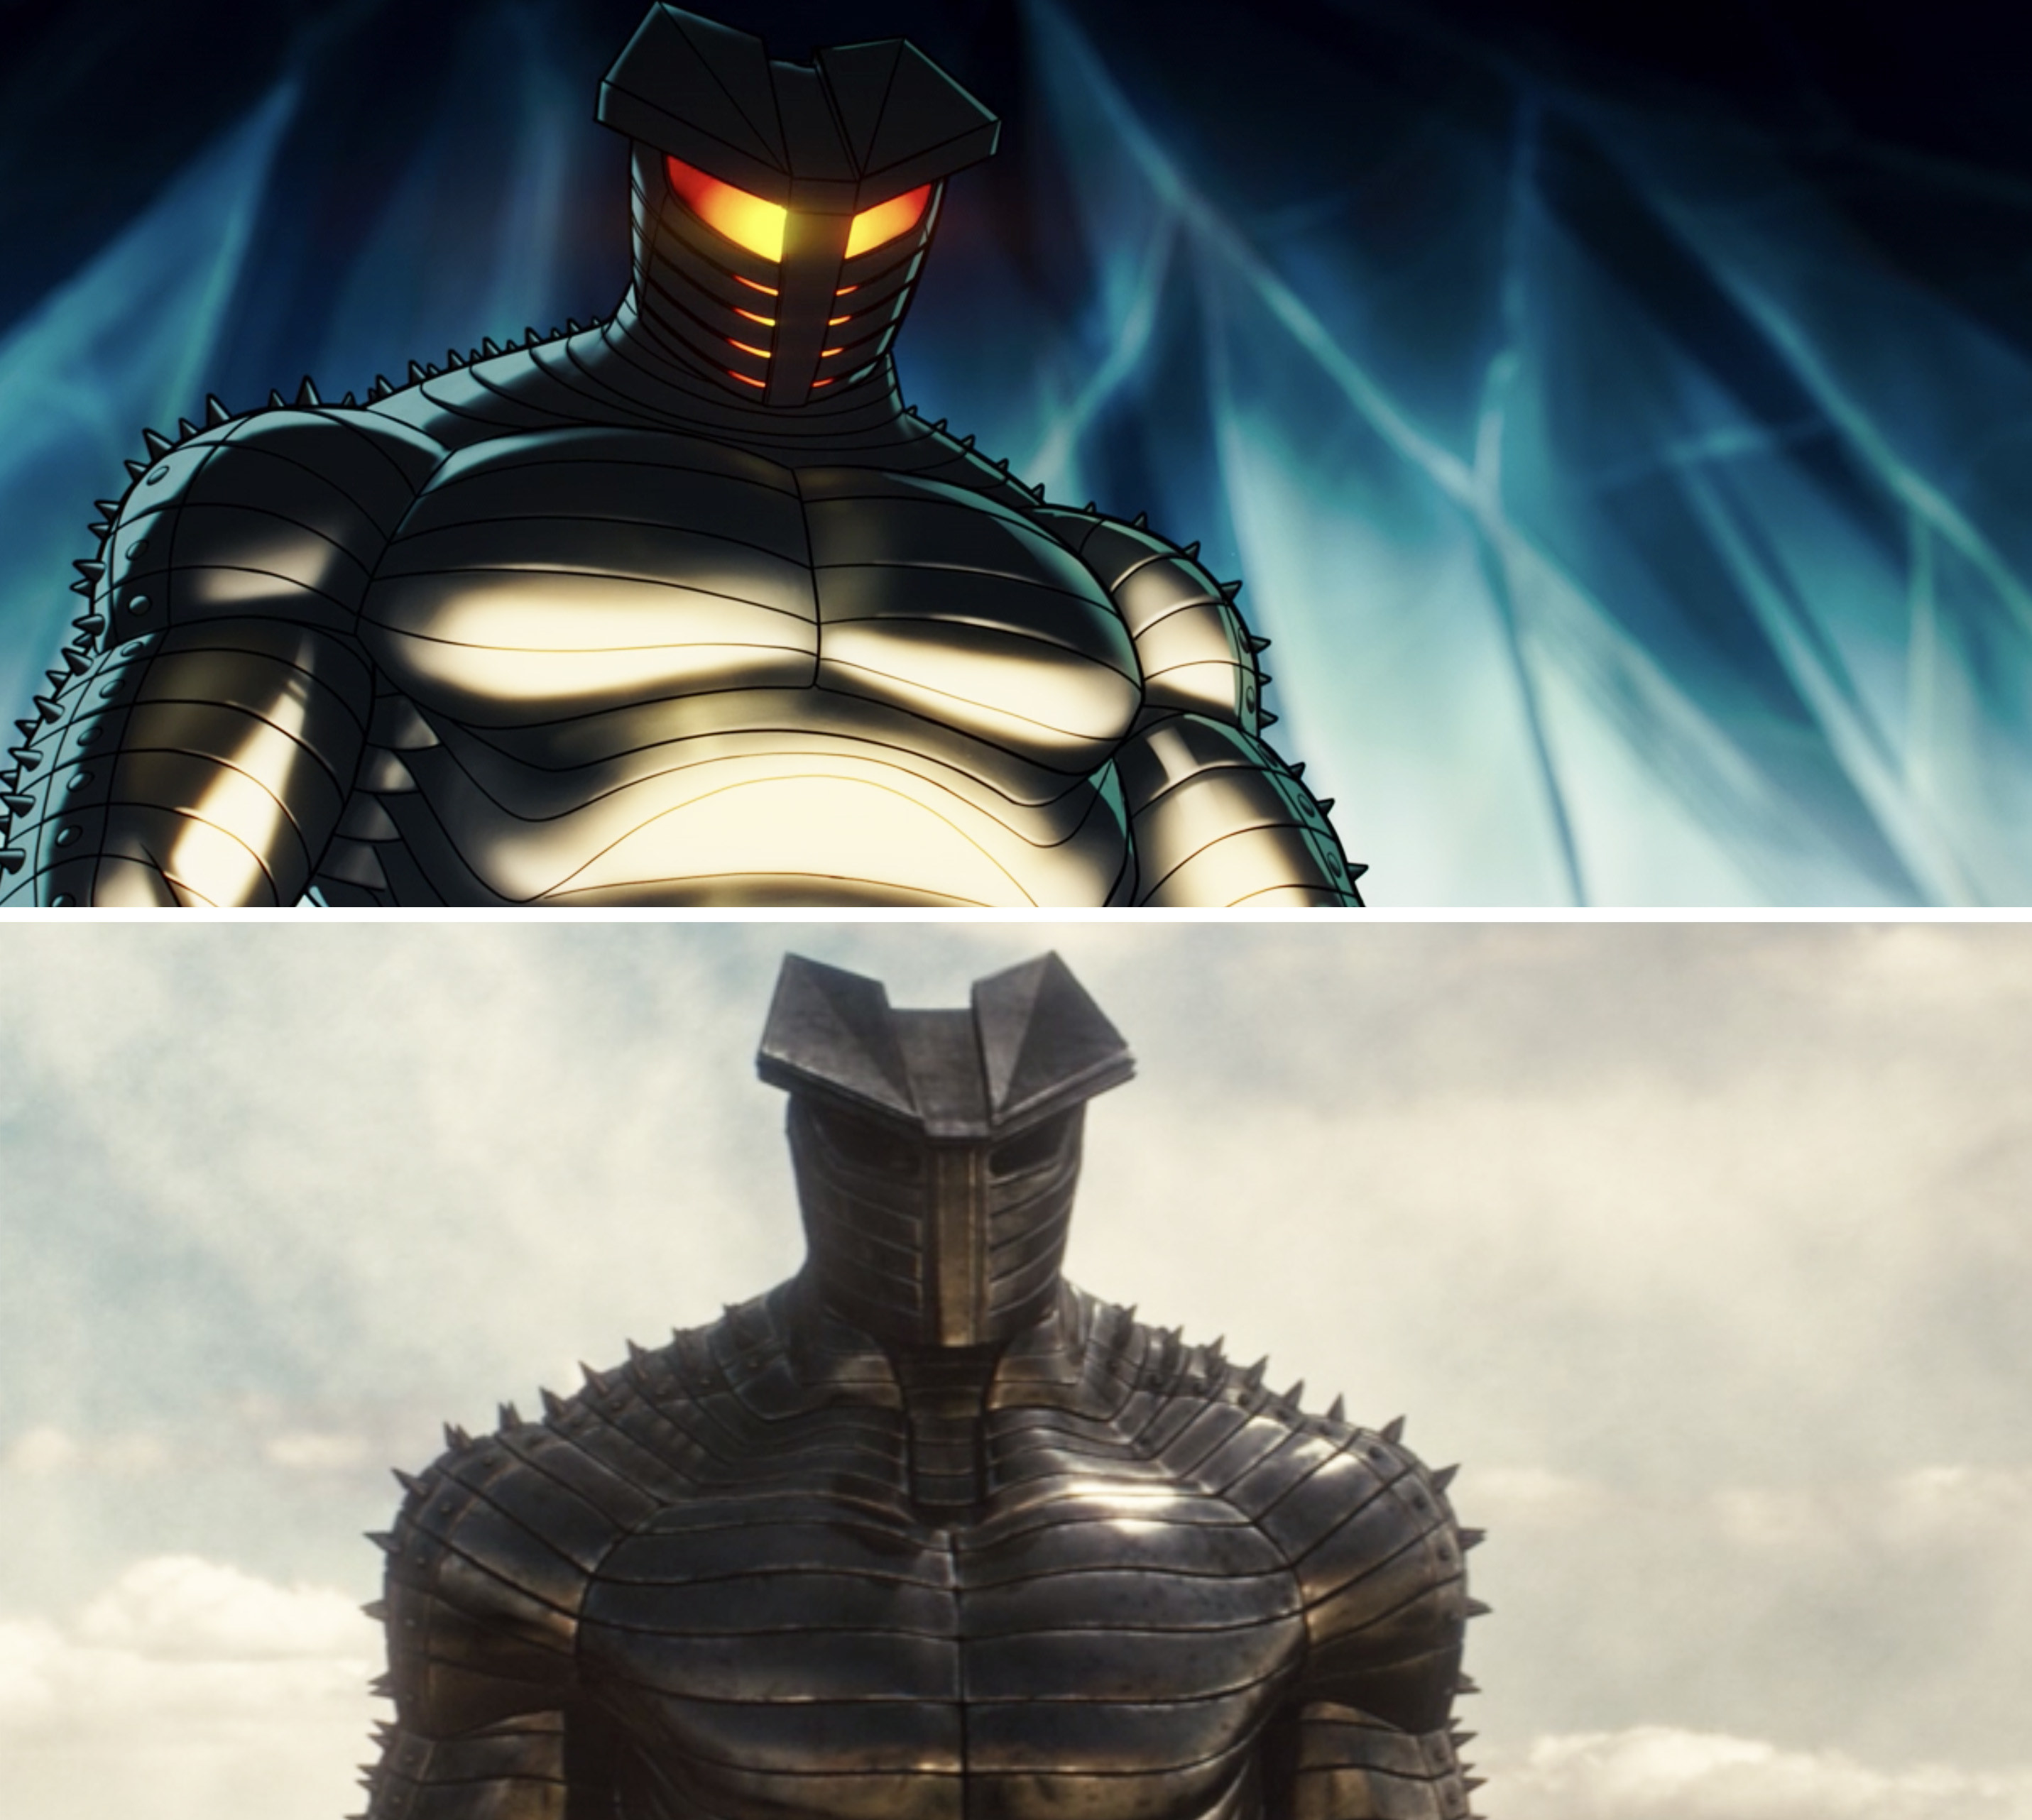 The Destroyer in What If vs in Thor